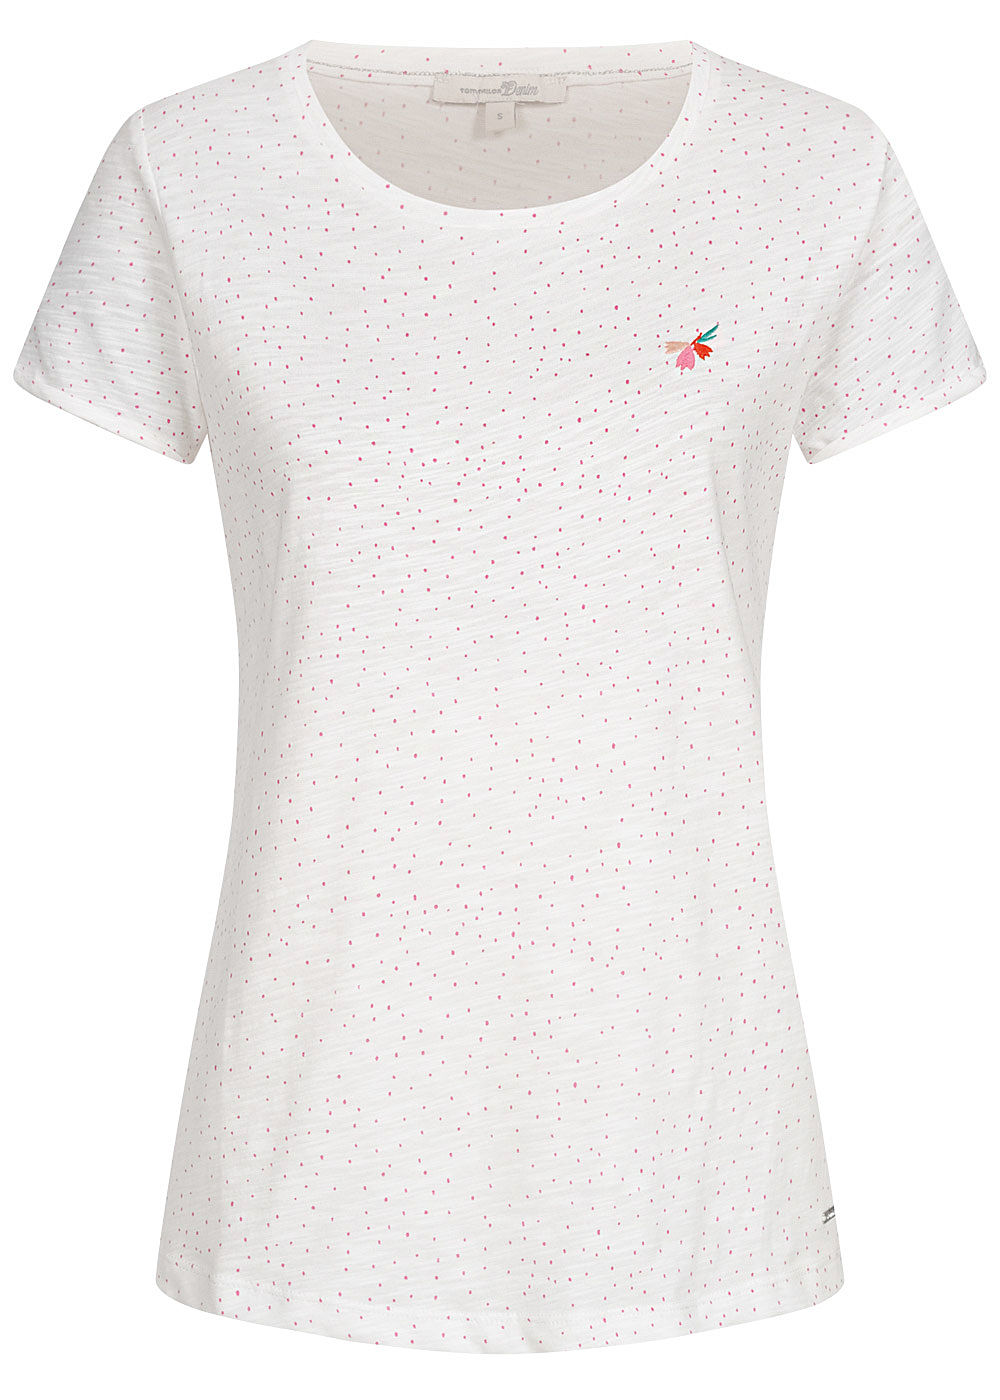 Tom Tailor Damen T-Shirt Dots Punkte Print weiss rosa - Art.-Nr.: 20030893